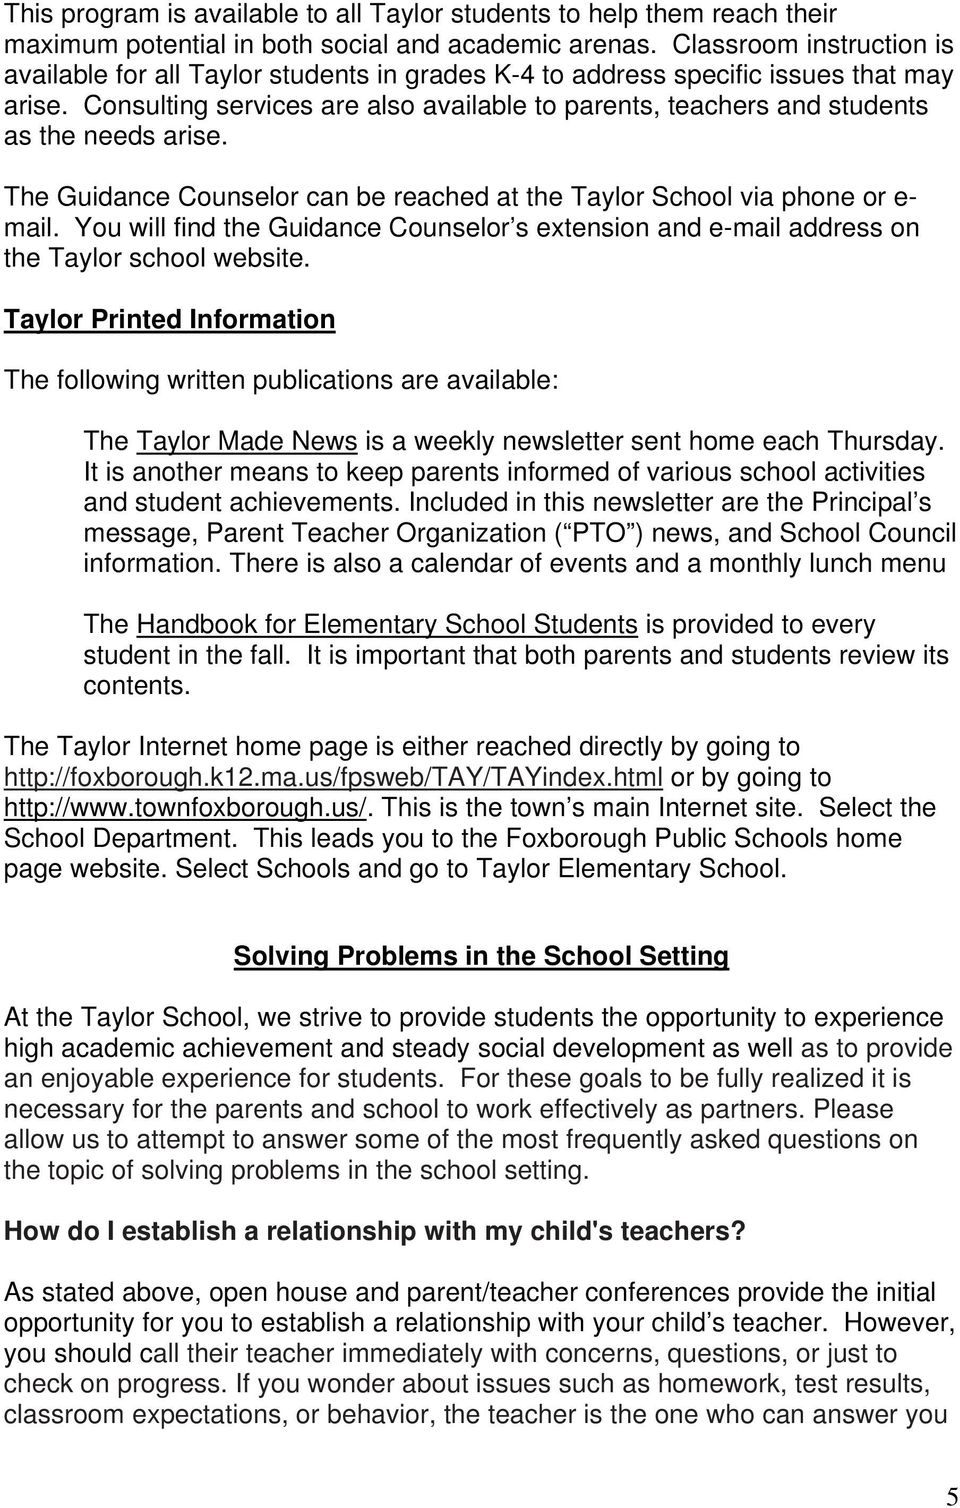 Charles G  Taylor Elementary School A Communication Guide